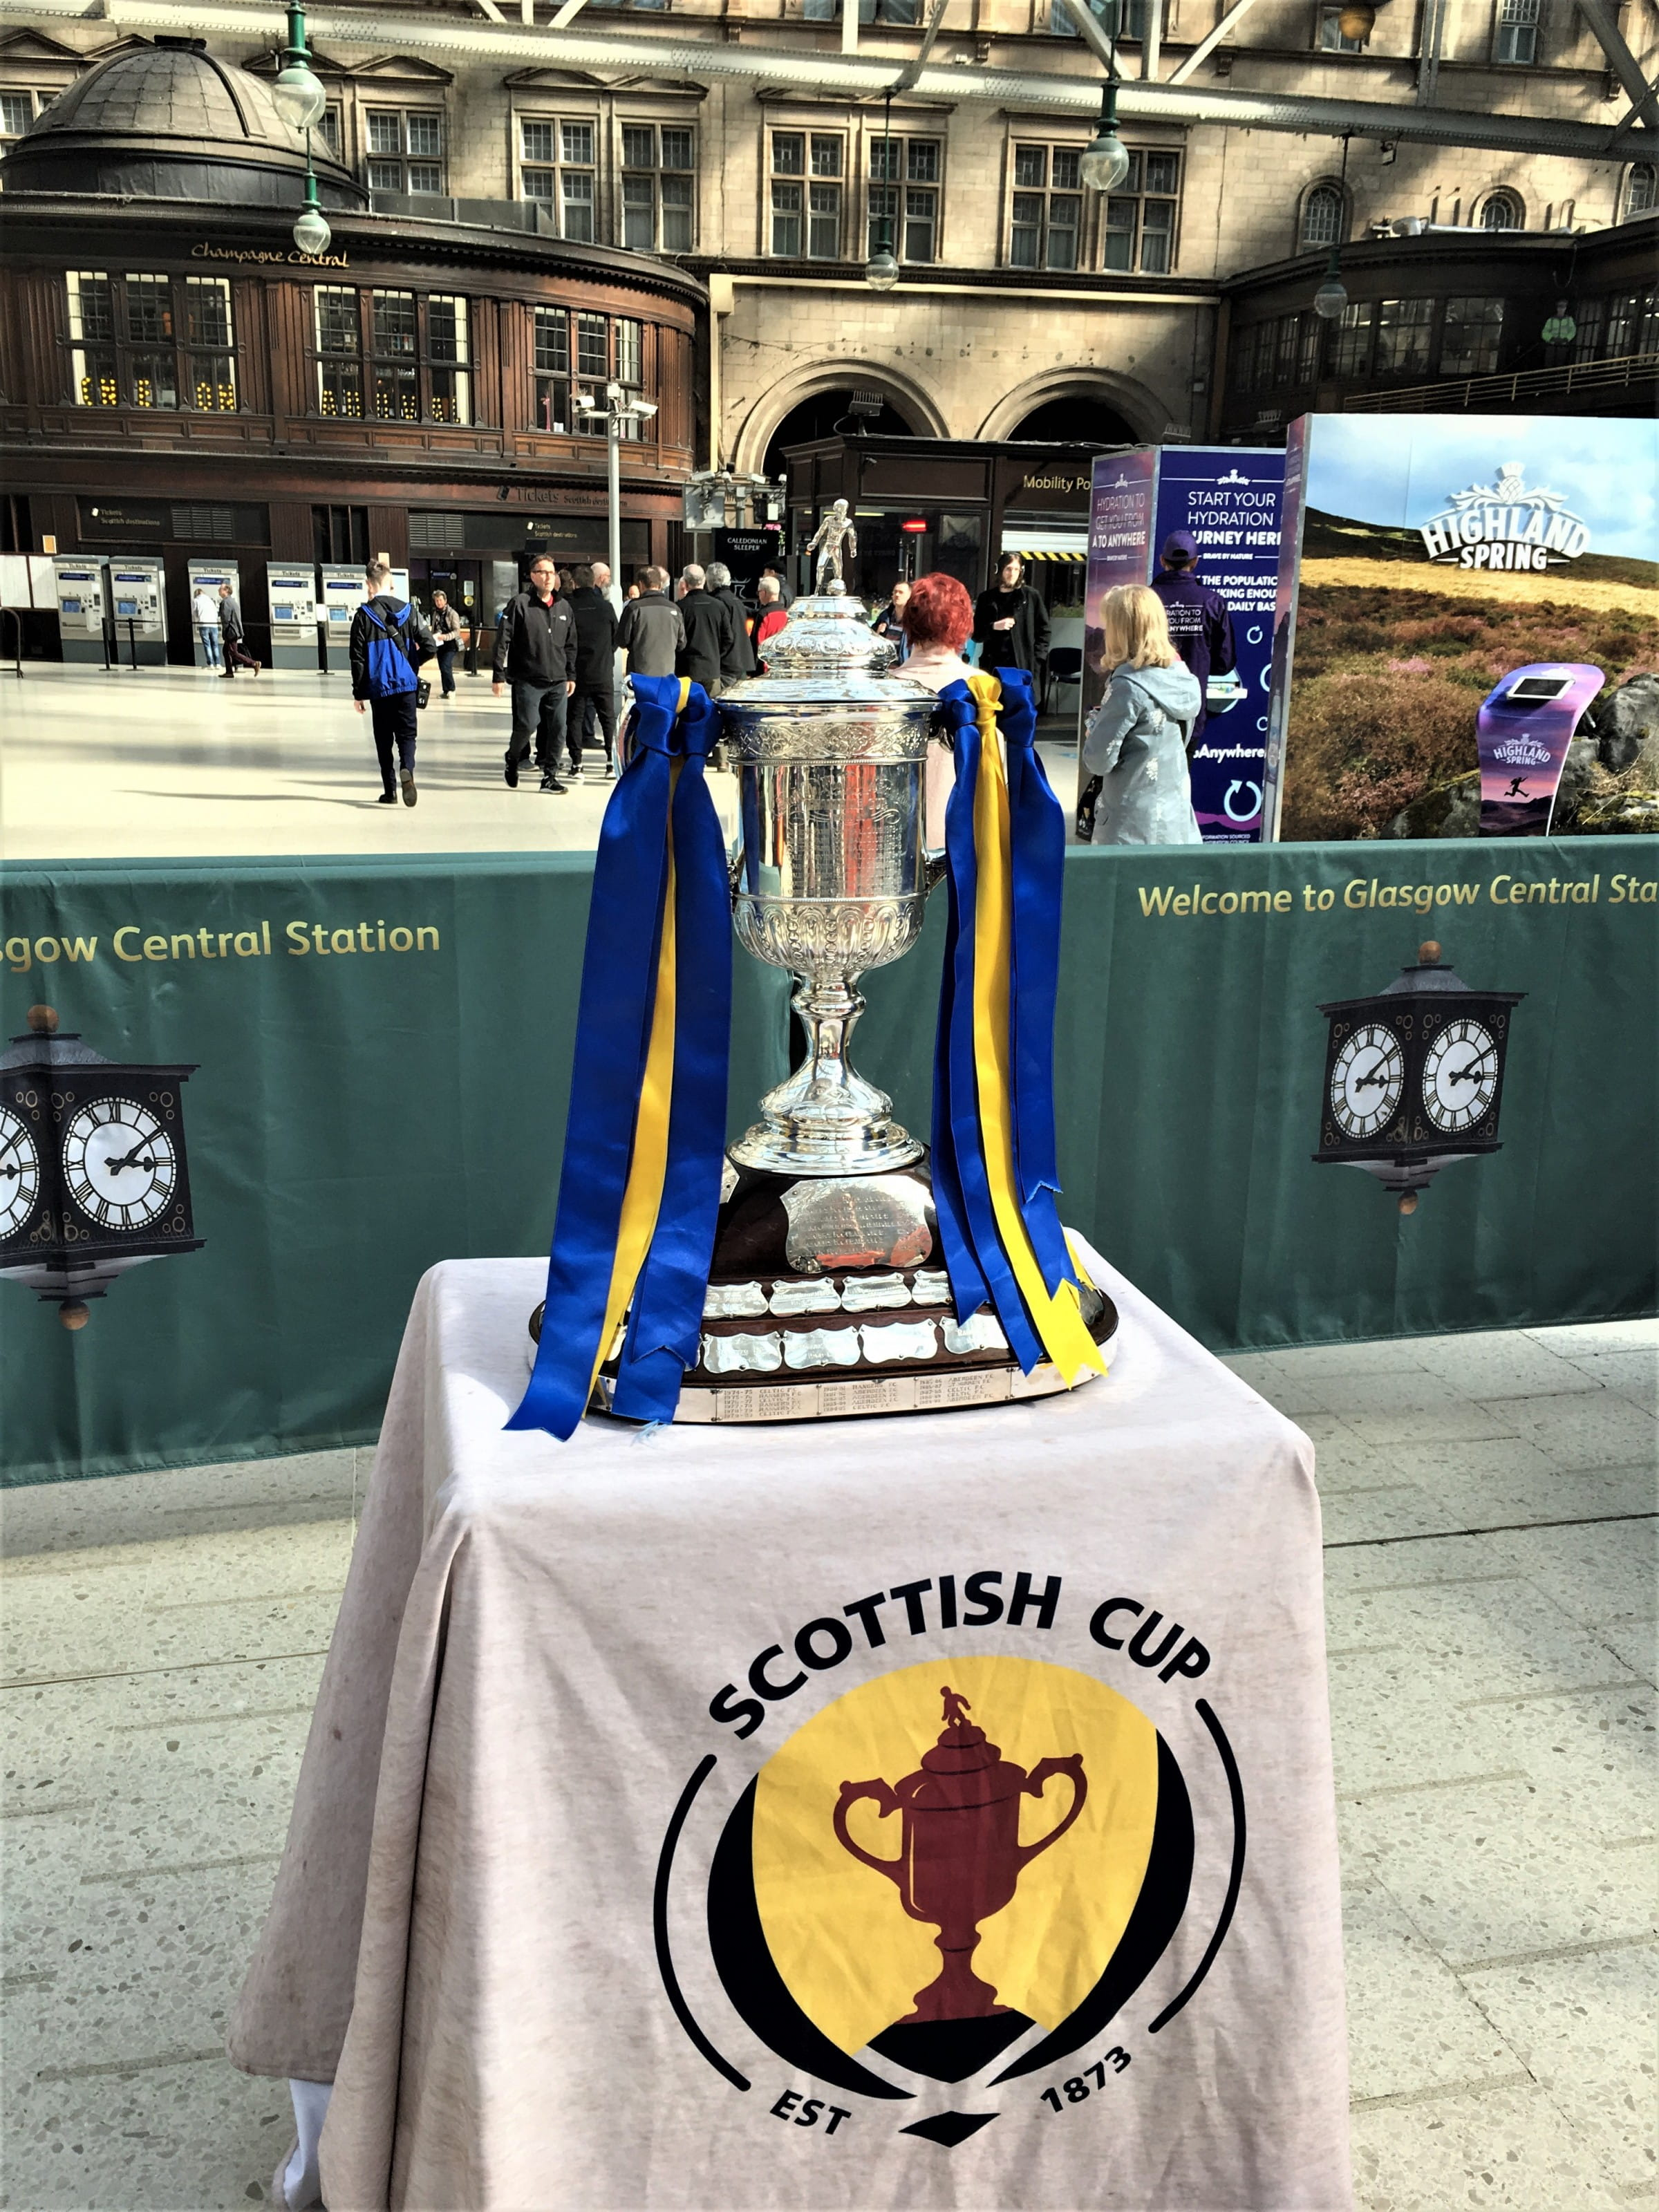 Up for the cup (The Scottish Cup)